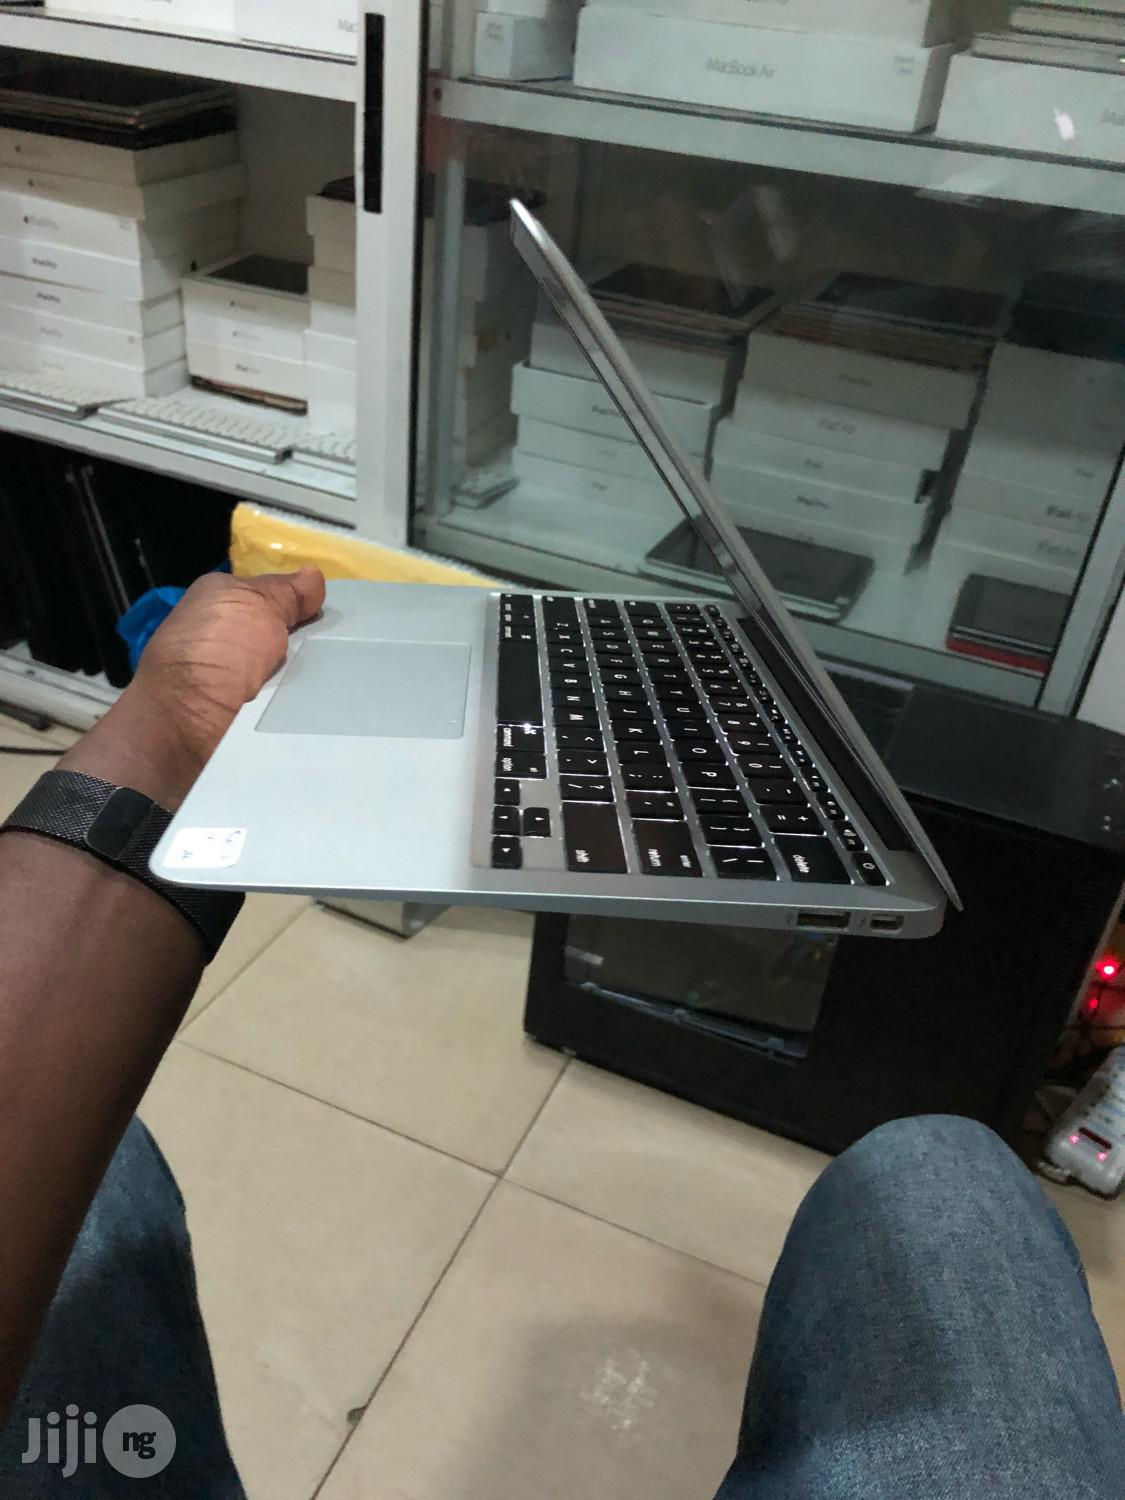 Laptop Apple MacBook Air 8GB Intel Core I5 SSD 256GB | Laptops & Computers for sale in Lekki, Lagos State, Nigeria